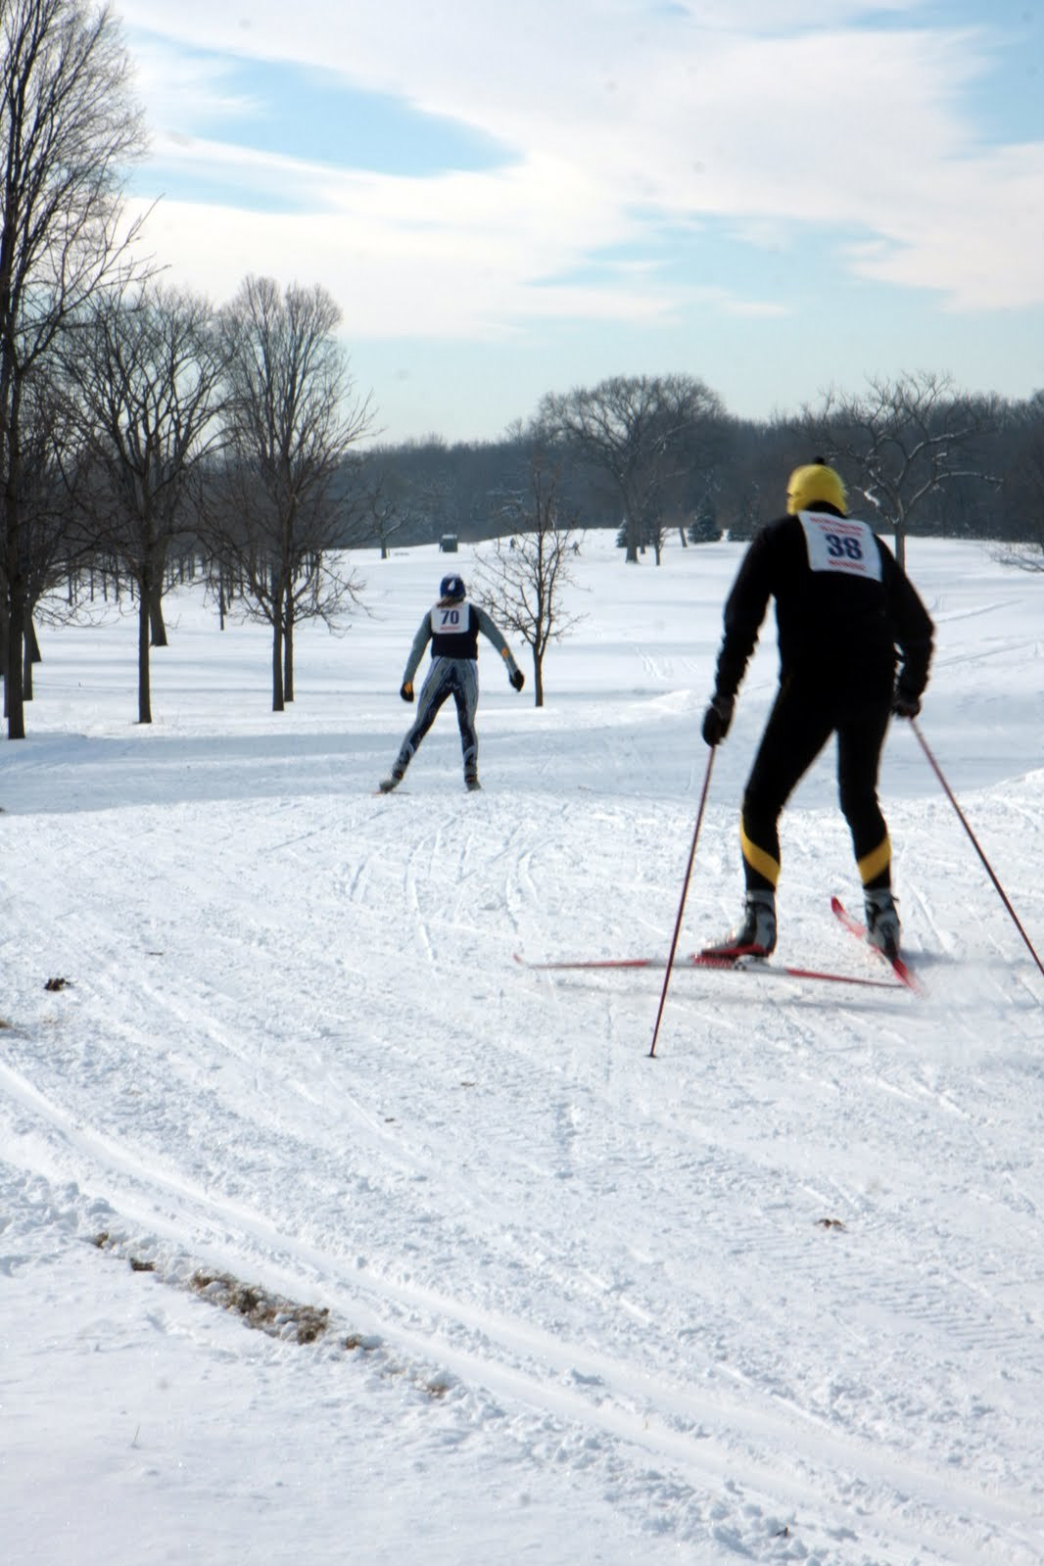 Best Spots For Newbie Cross Country Skiers In Illinois